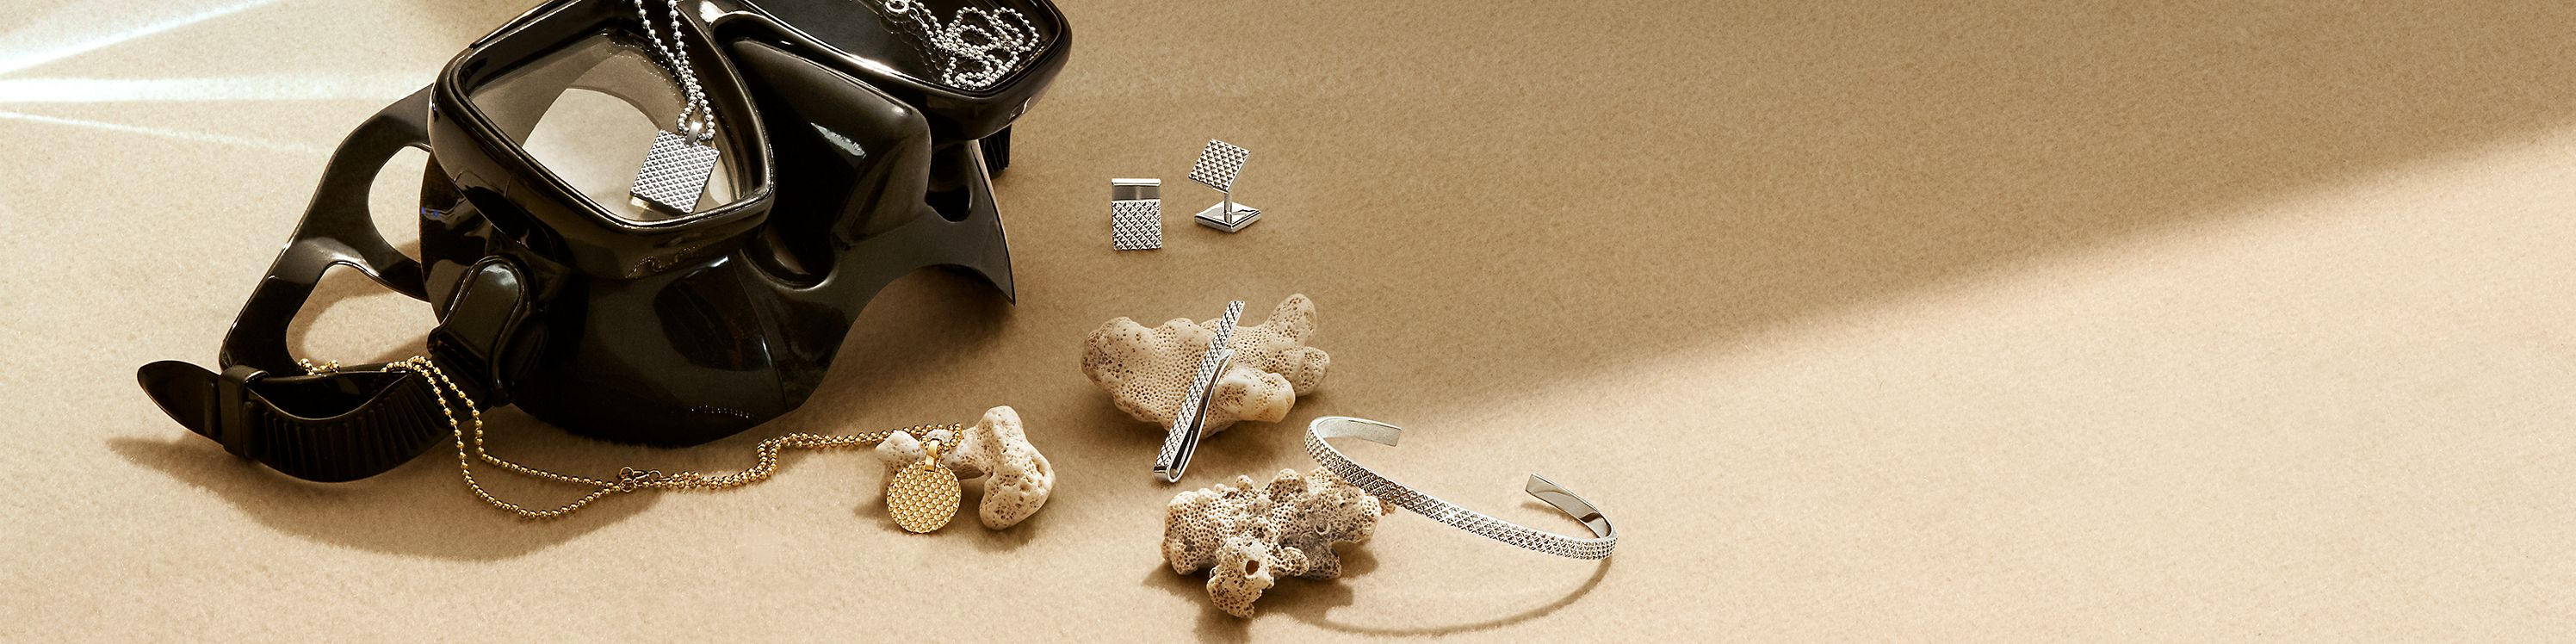 Tiffany & Co. Diamond Point 系列